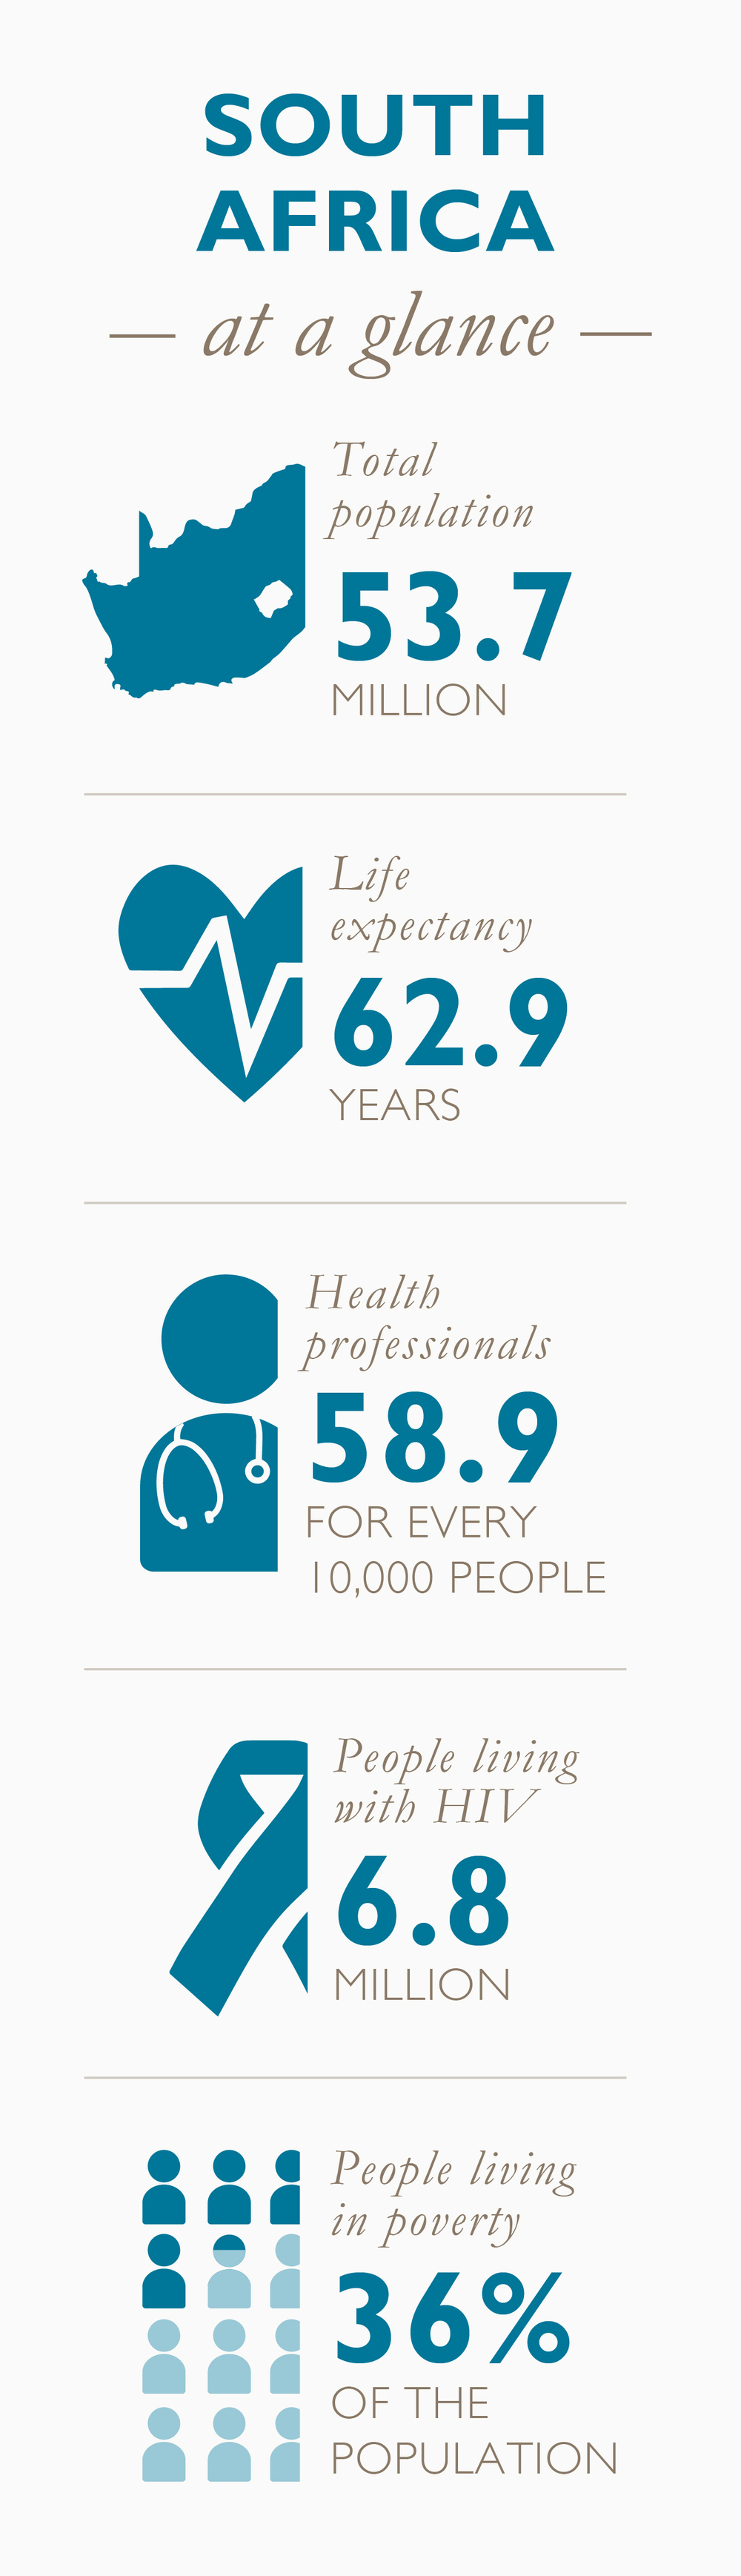 Data Source: CIA World Factbook, World Health Organization. For more information, see data notes